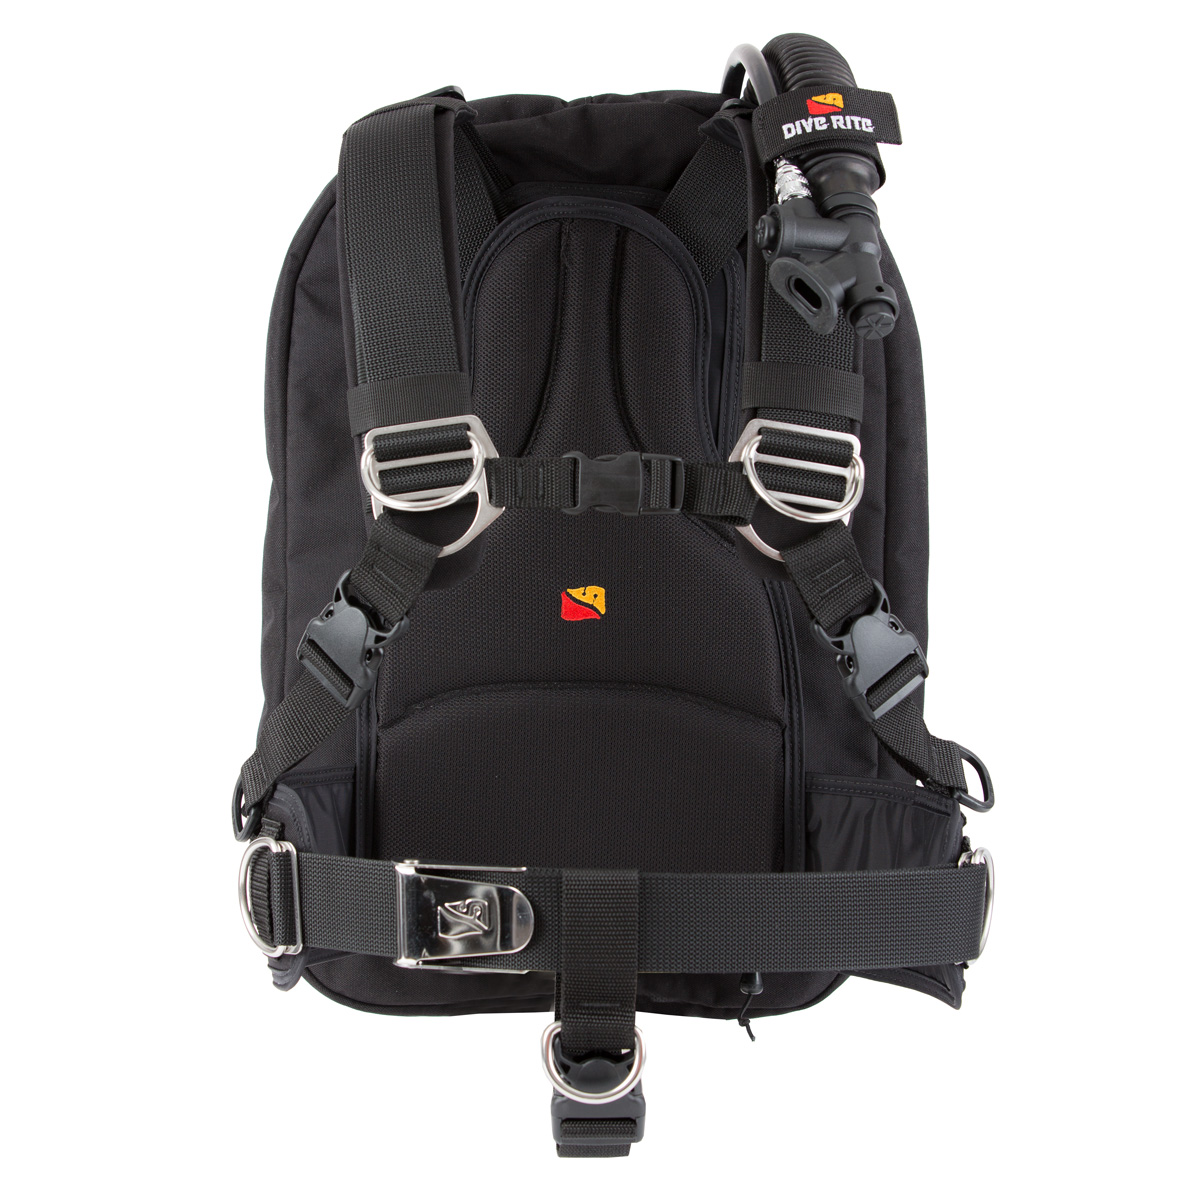 Travelpac bcd dive rite - Dive rite sidemount ...